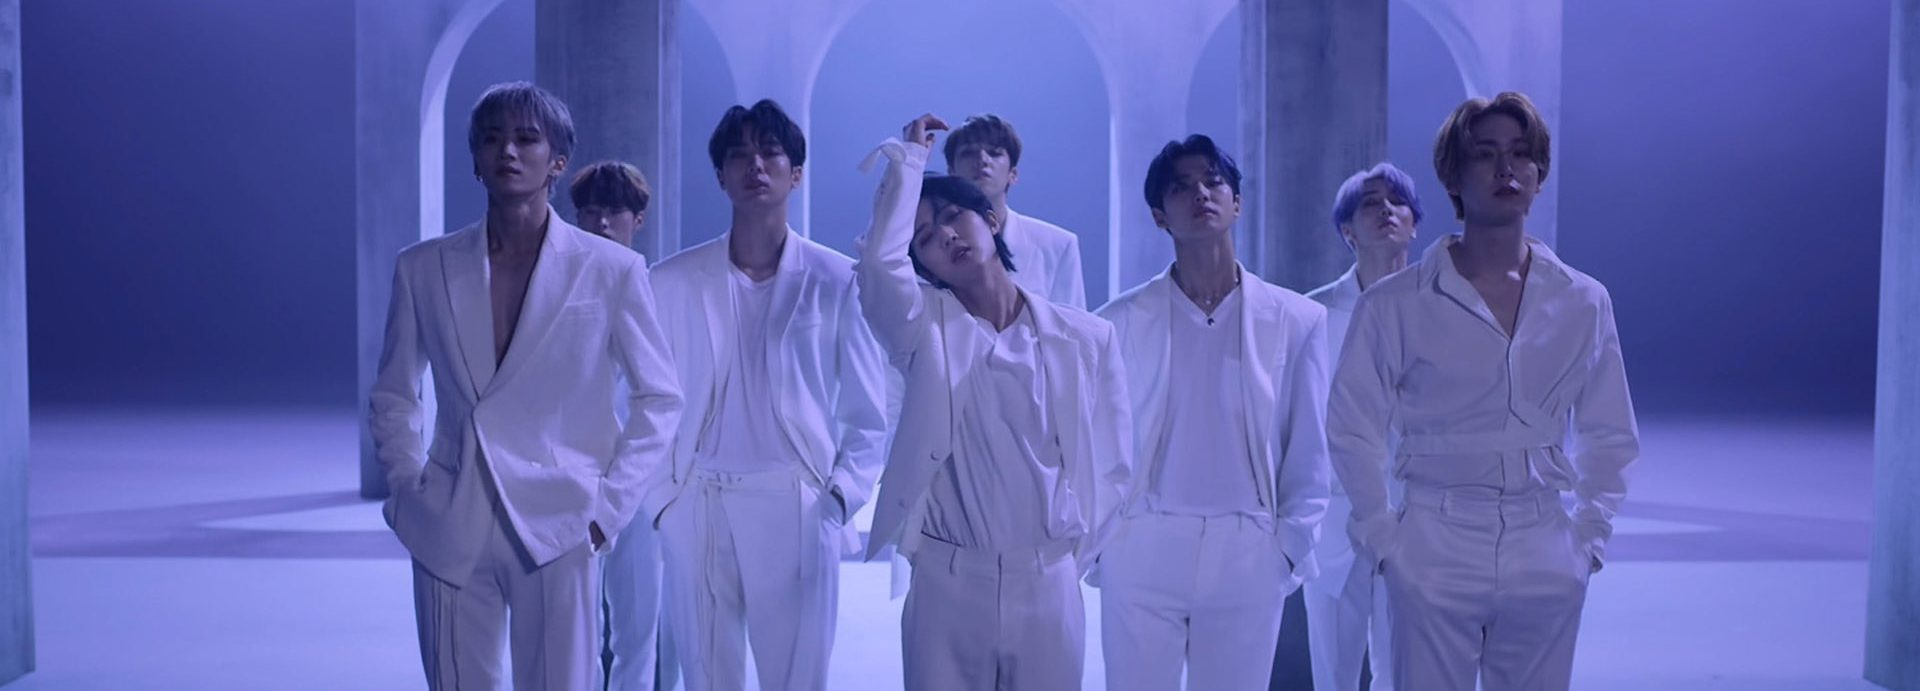 """PENTAGON Stuns With A Powerful Performance Video For """"Daisy"""""""